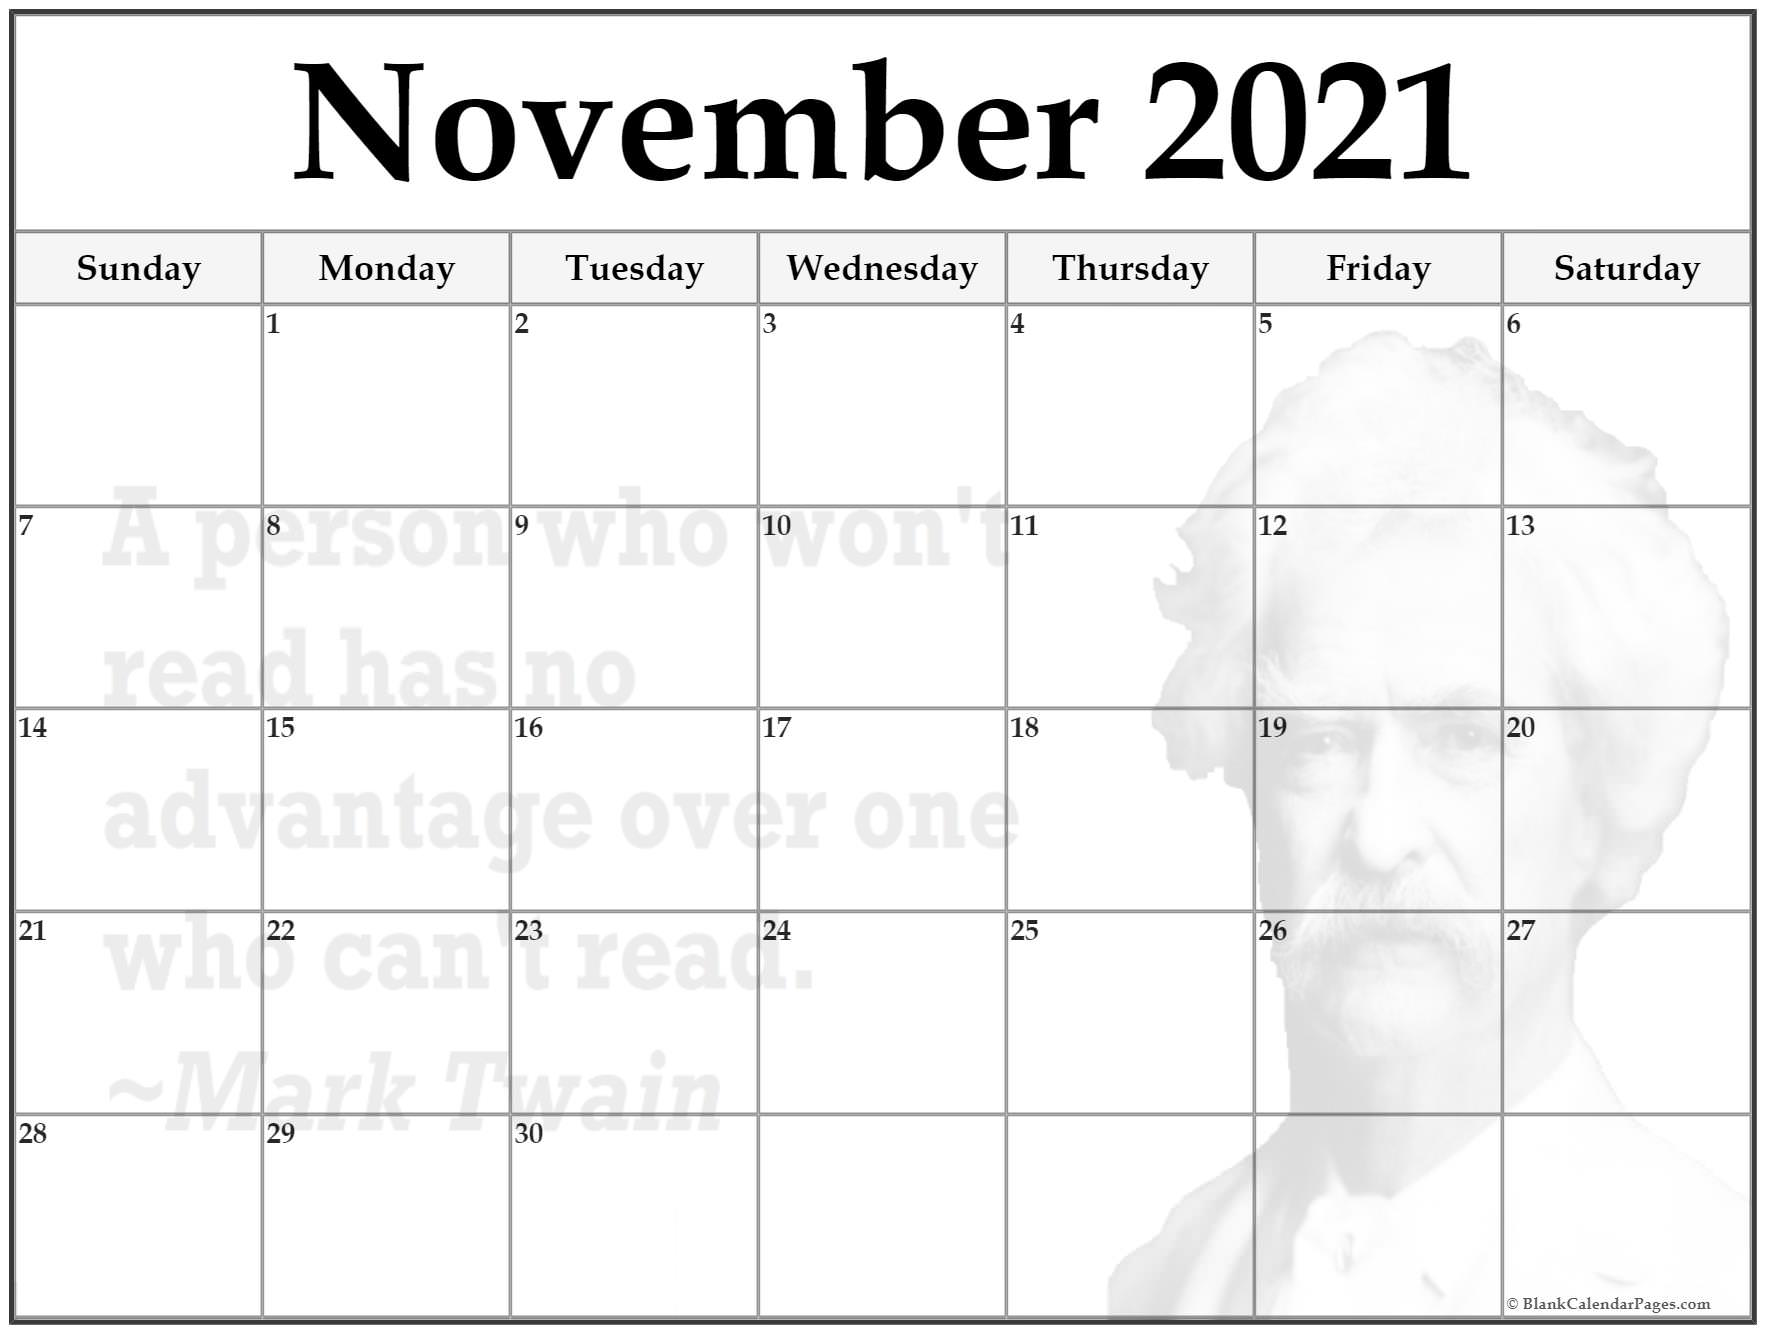 November 2021 with twain quotes. A person who won't read has no advantage over a person who can't read. ~Mark Twain